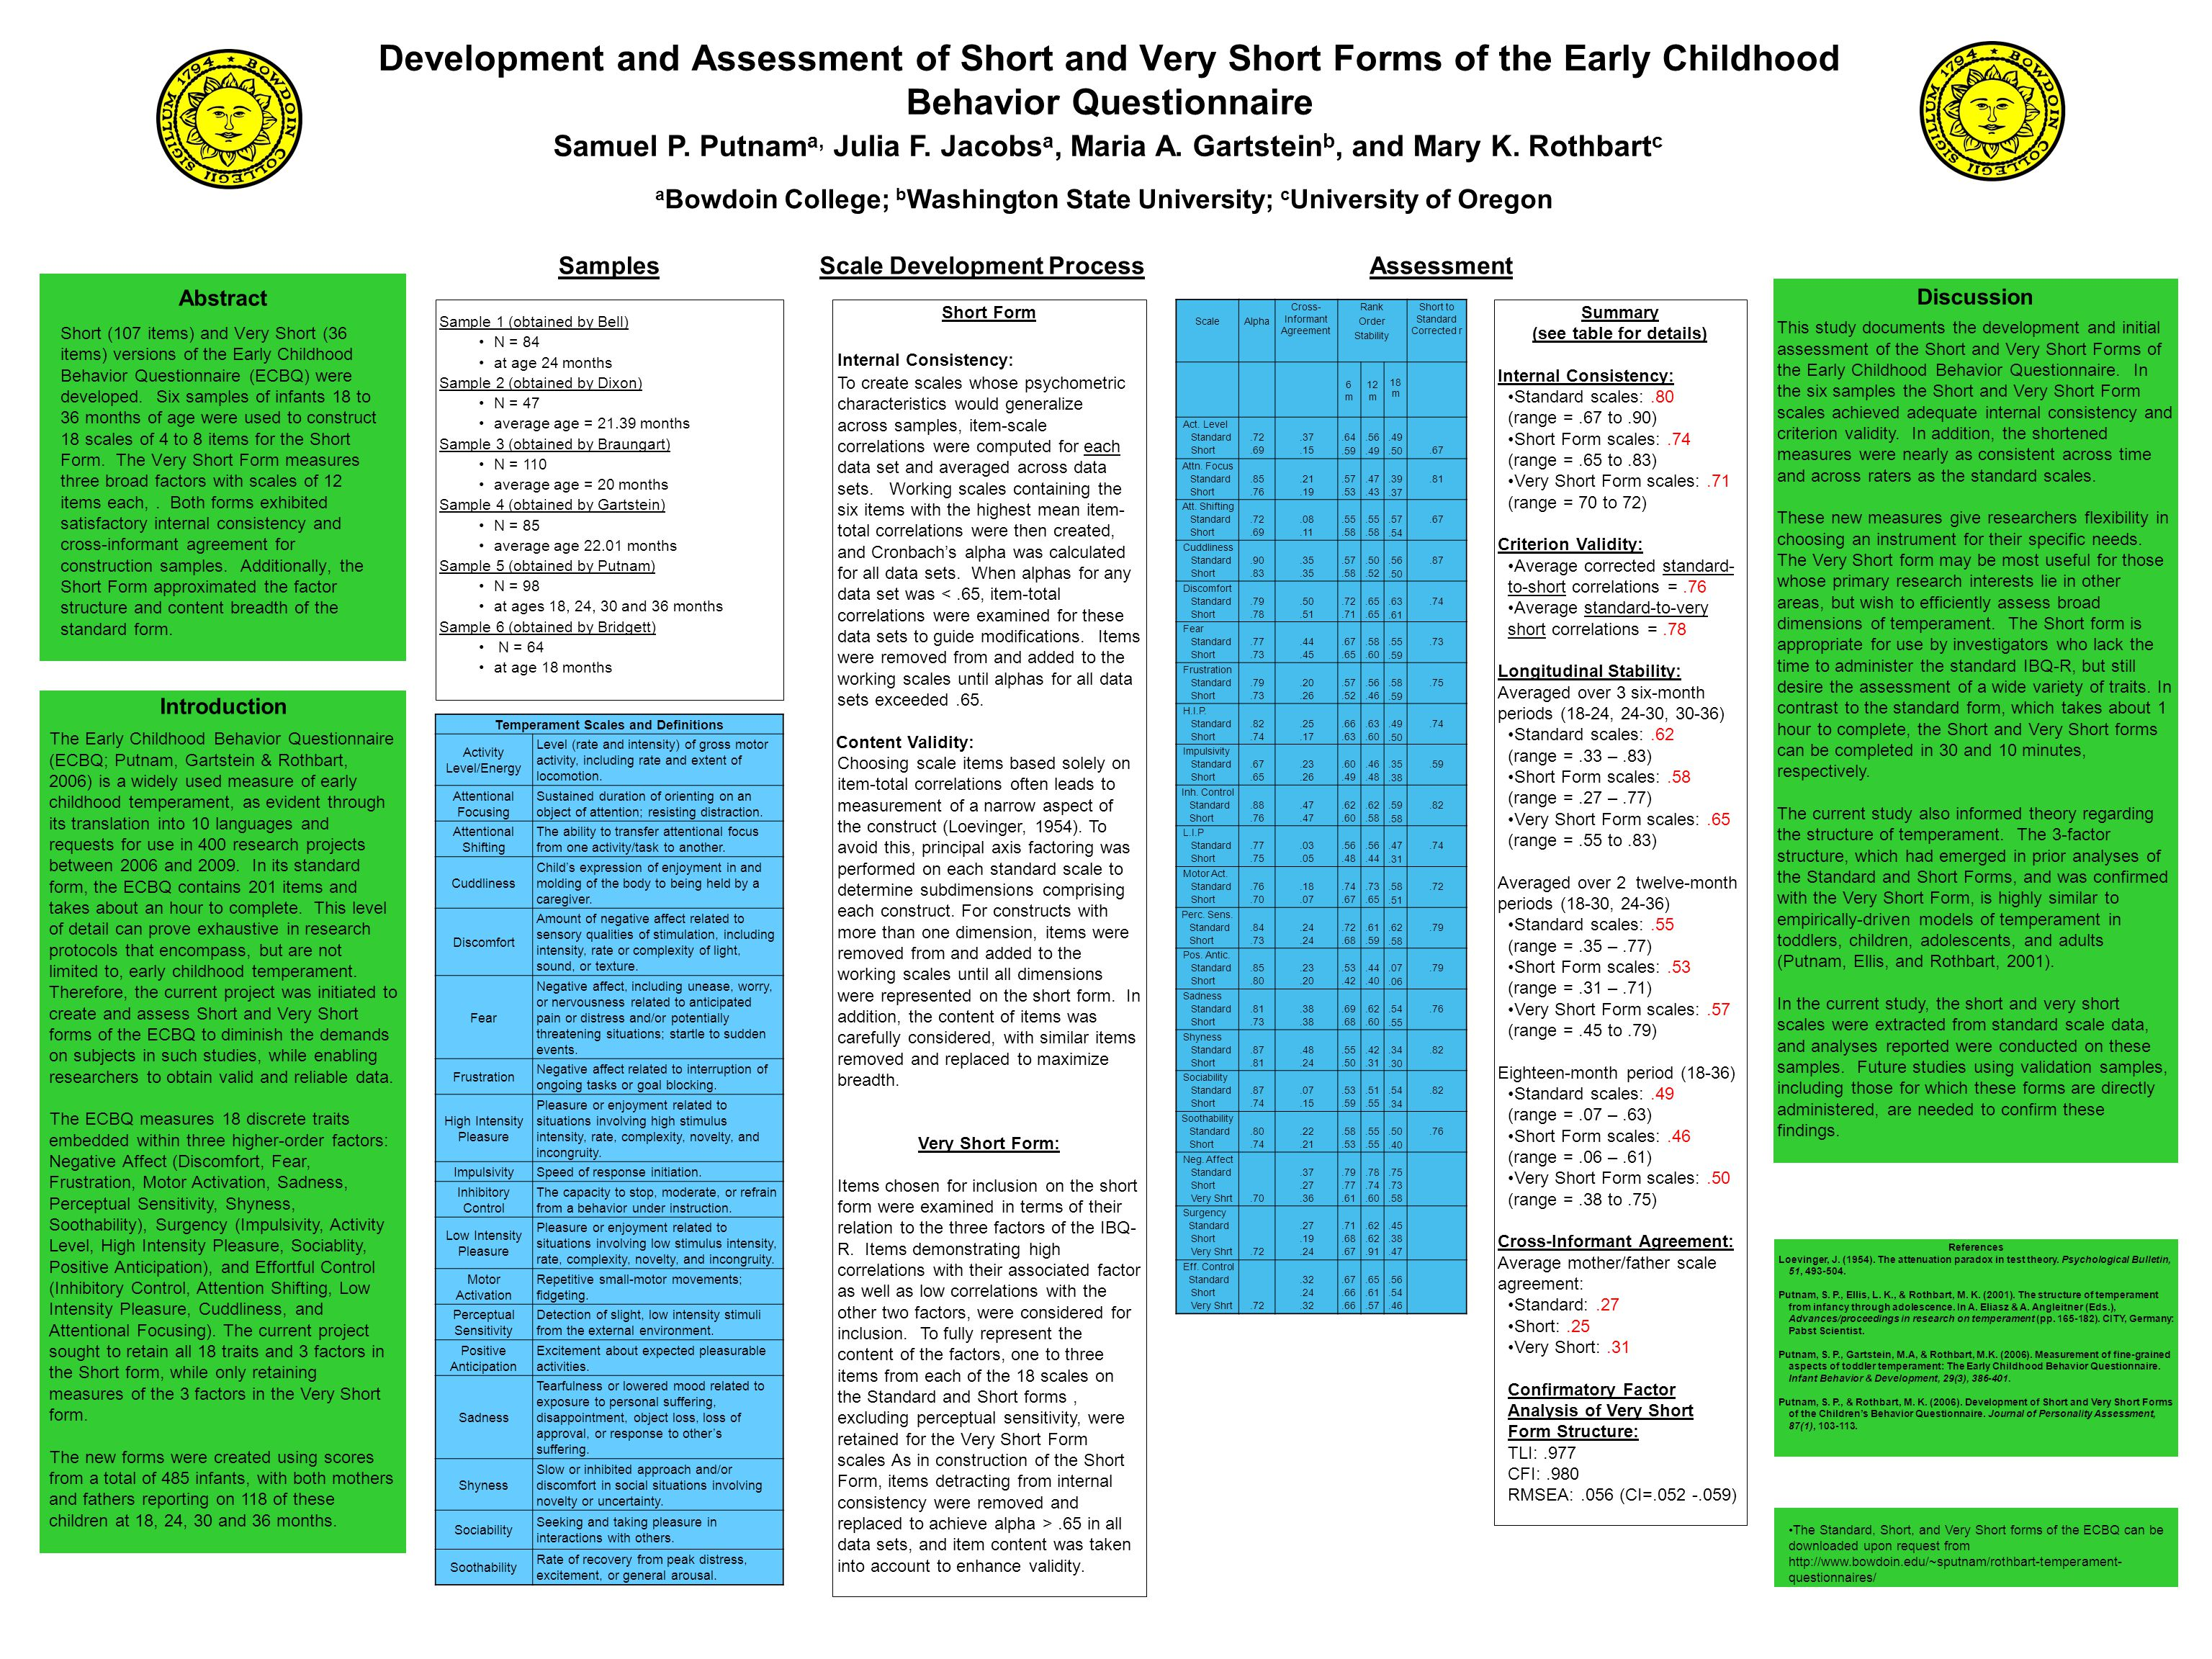 Development and Assessment of Short and Very Short Forms of the Early Childhood Behavior Questionnaire Abstract Short (107 items) and Very Short (36 items) versions of the Early Childhood Behavior Questionnaire (ECBQ) were developed.